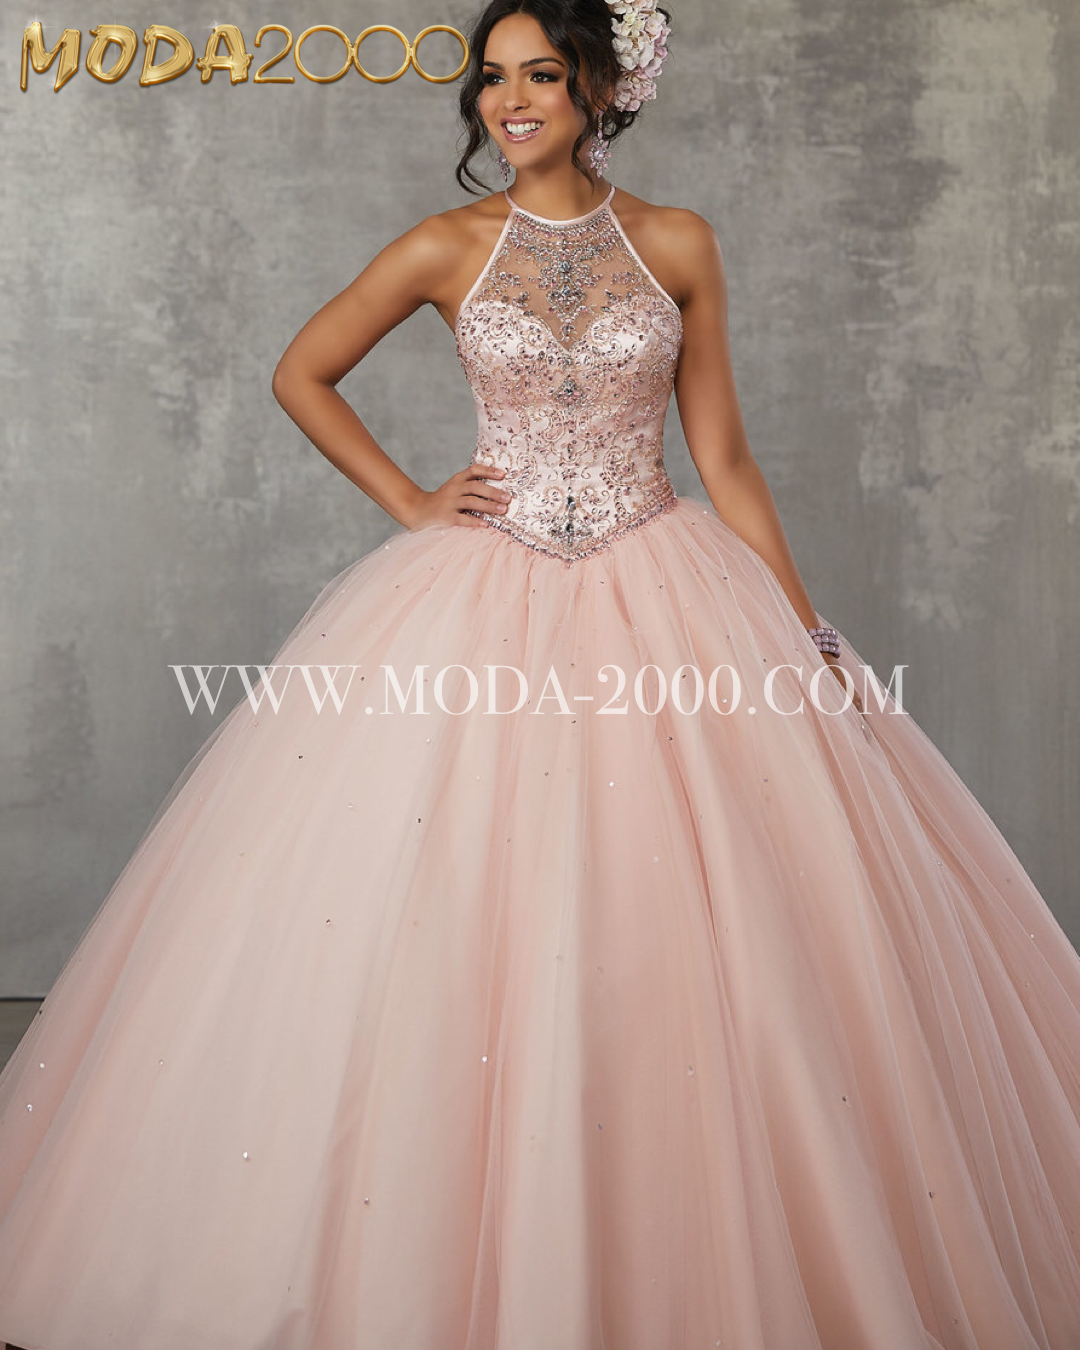 193aeea3d2e Blush pink halter quinceanera dress